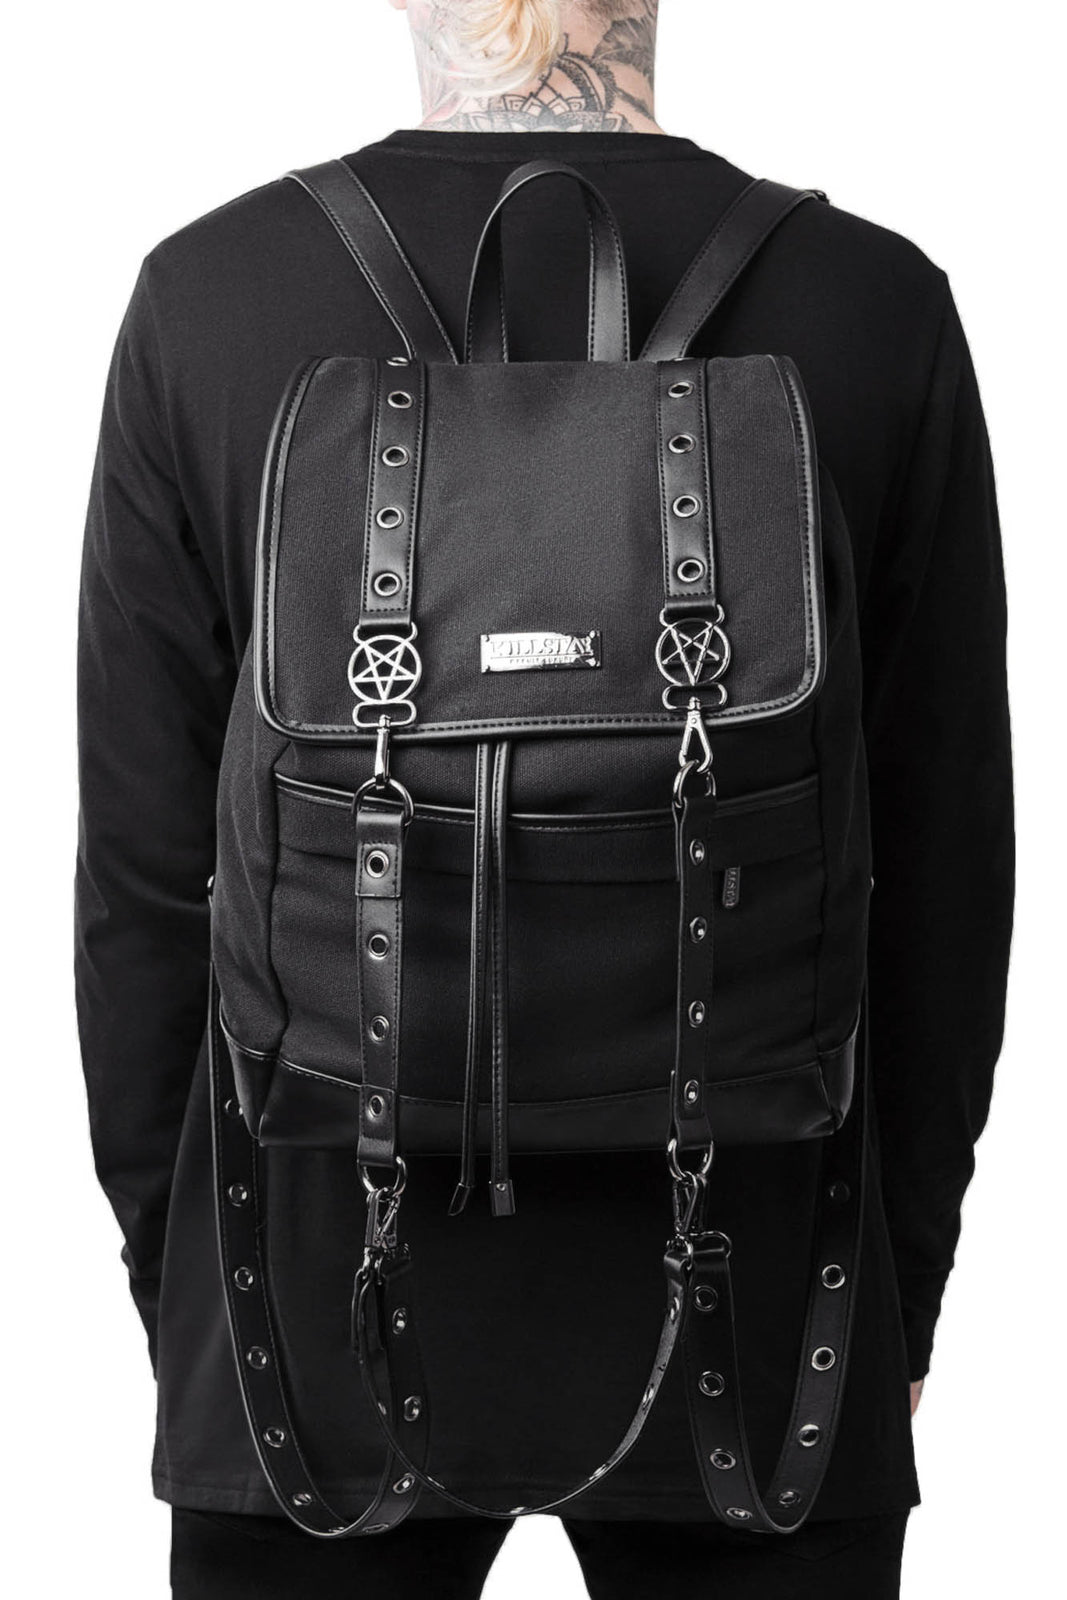 Unleashed Backpack [B]